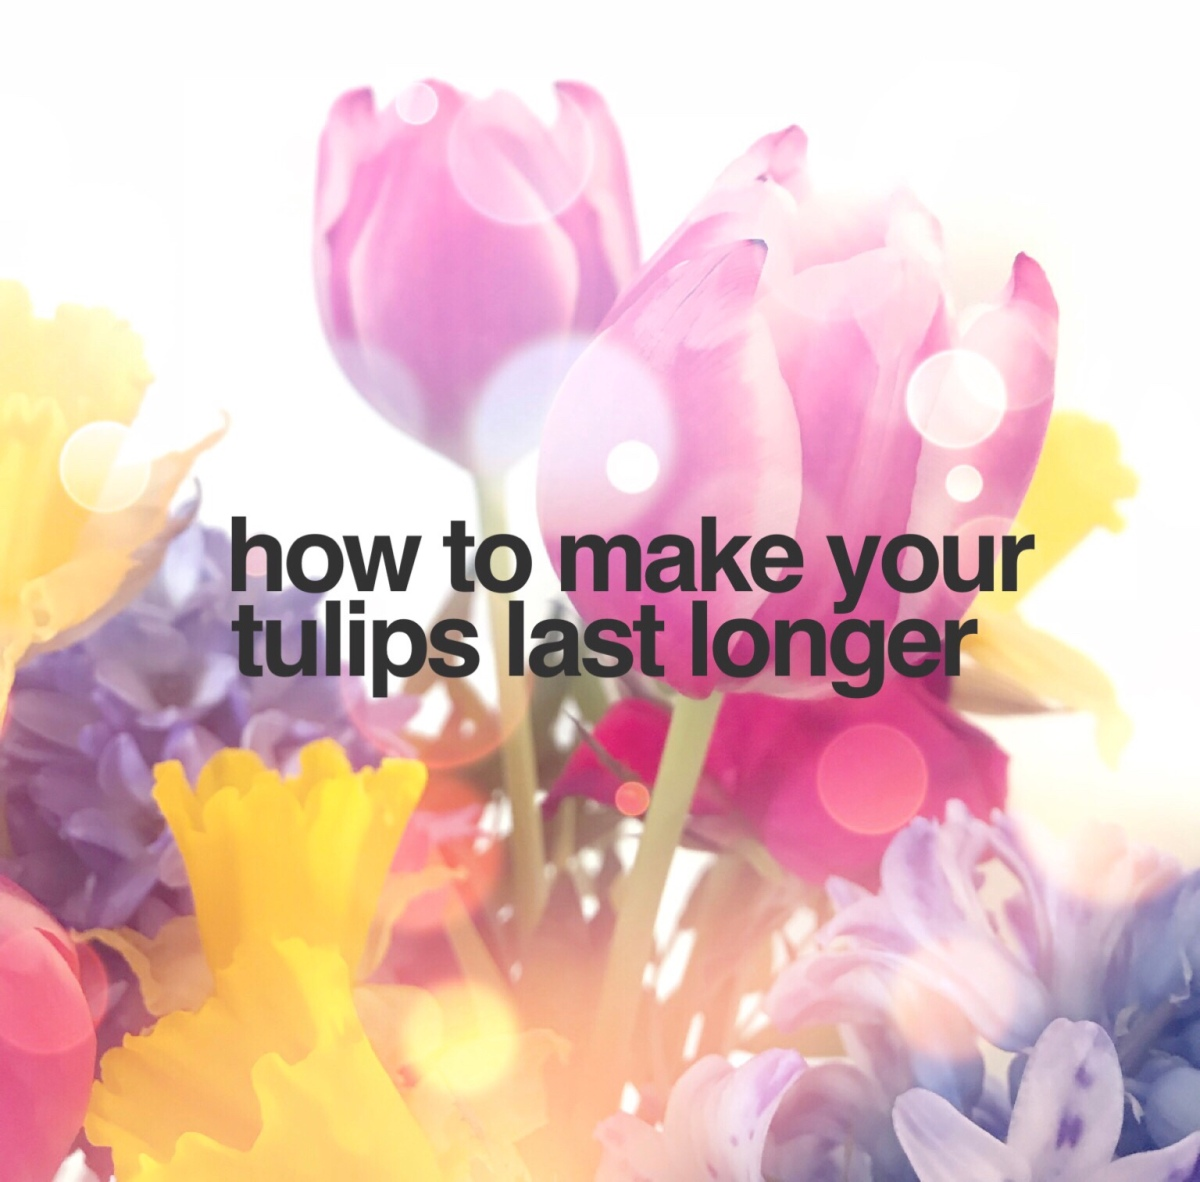 How To Make Your Tulips Last Longer